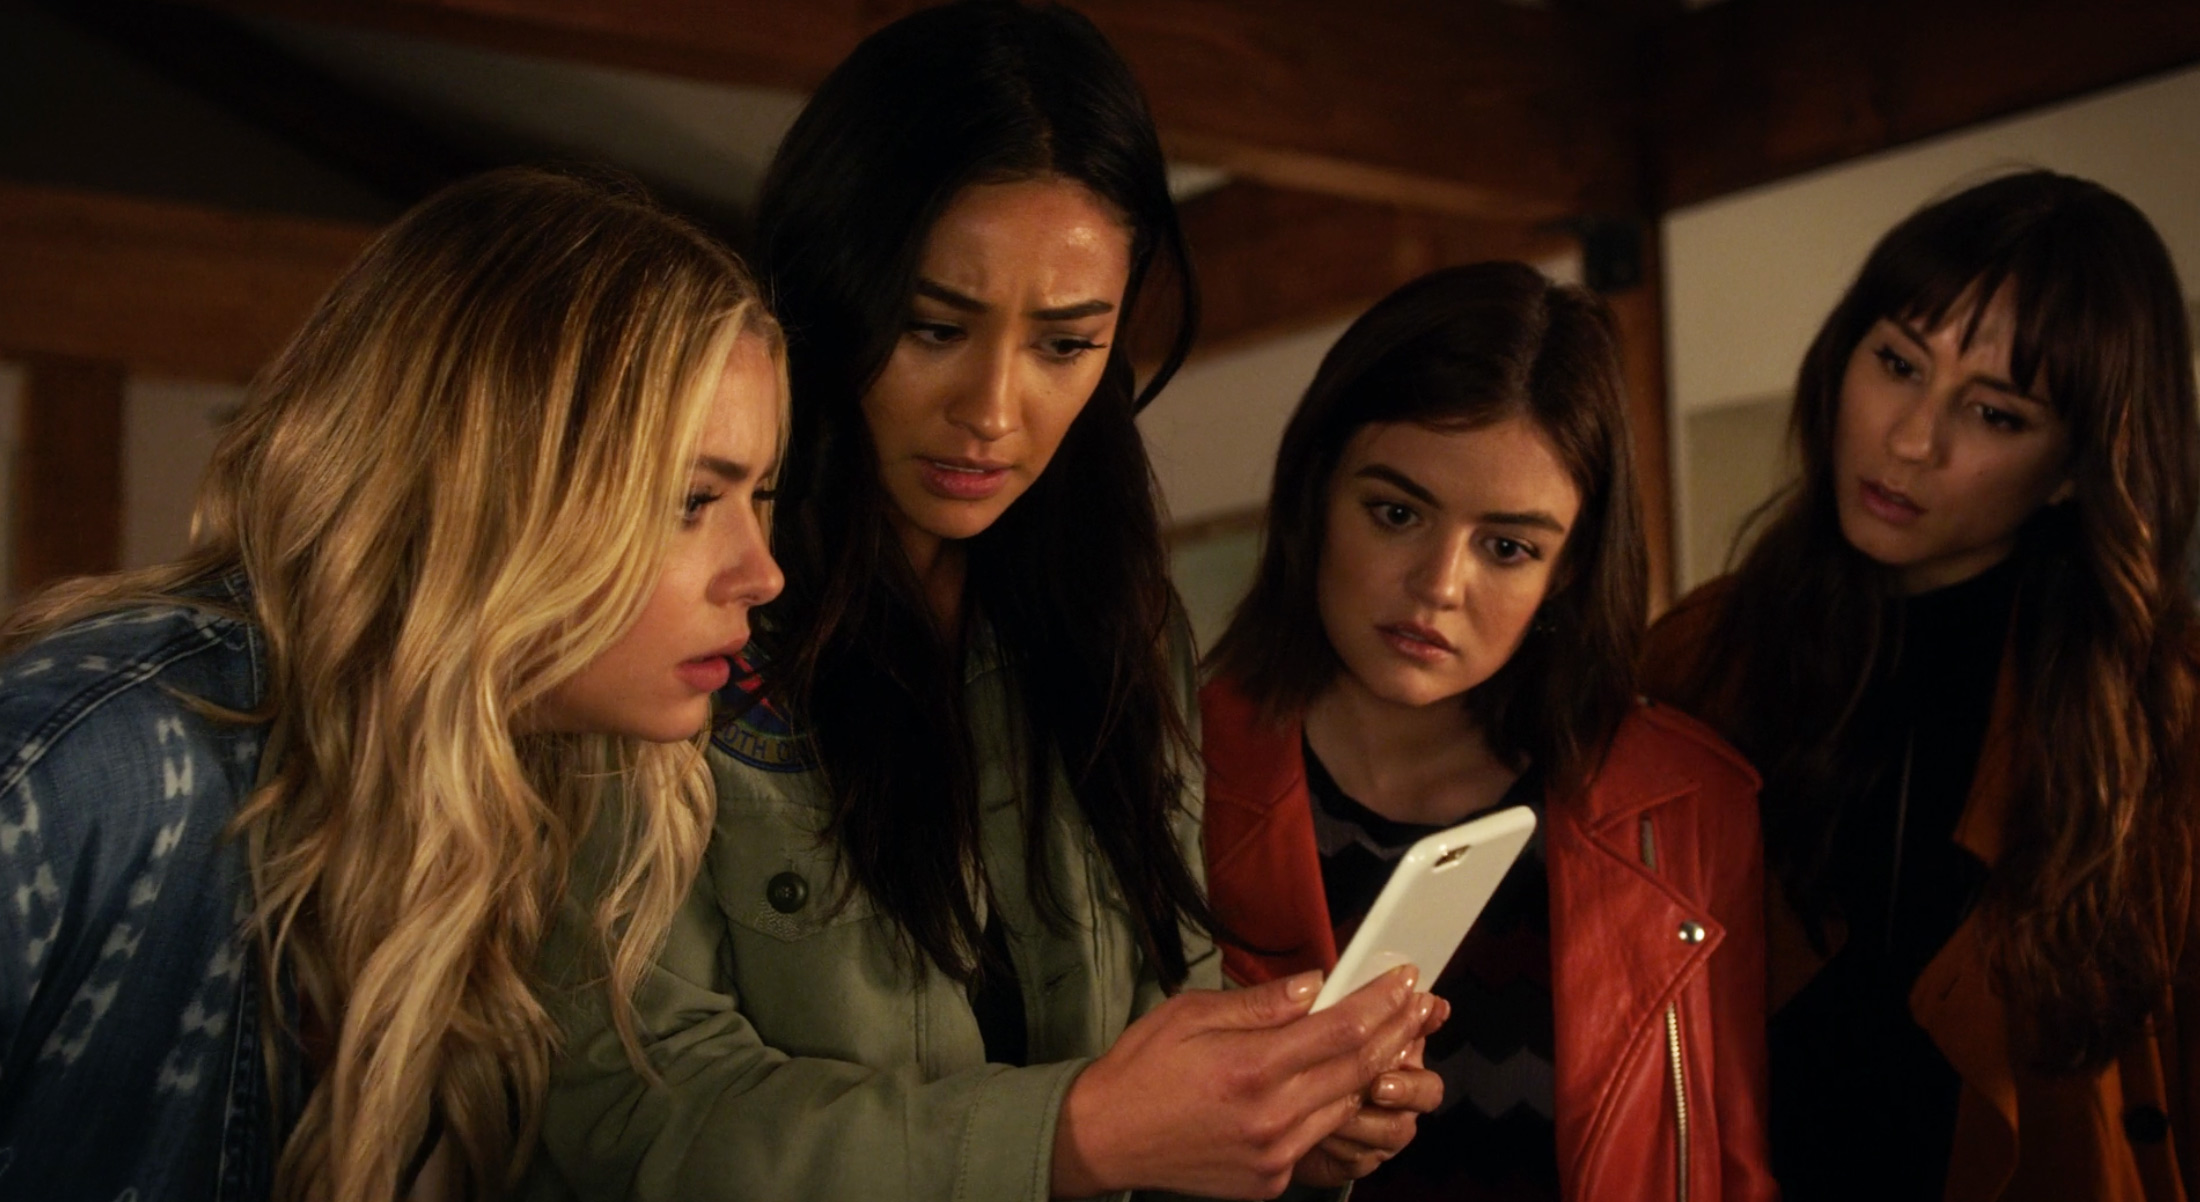 Pretty Little Liars Season 7 Episode 16 Stream